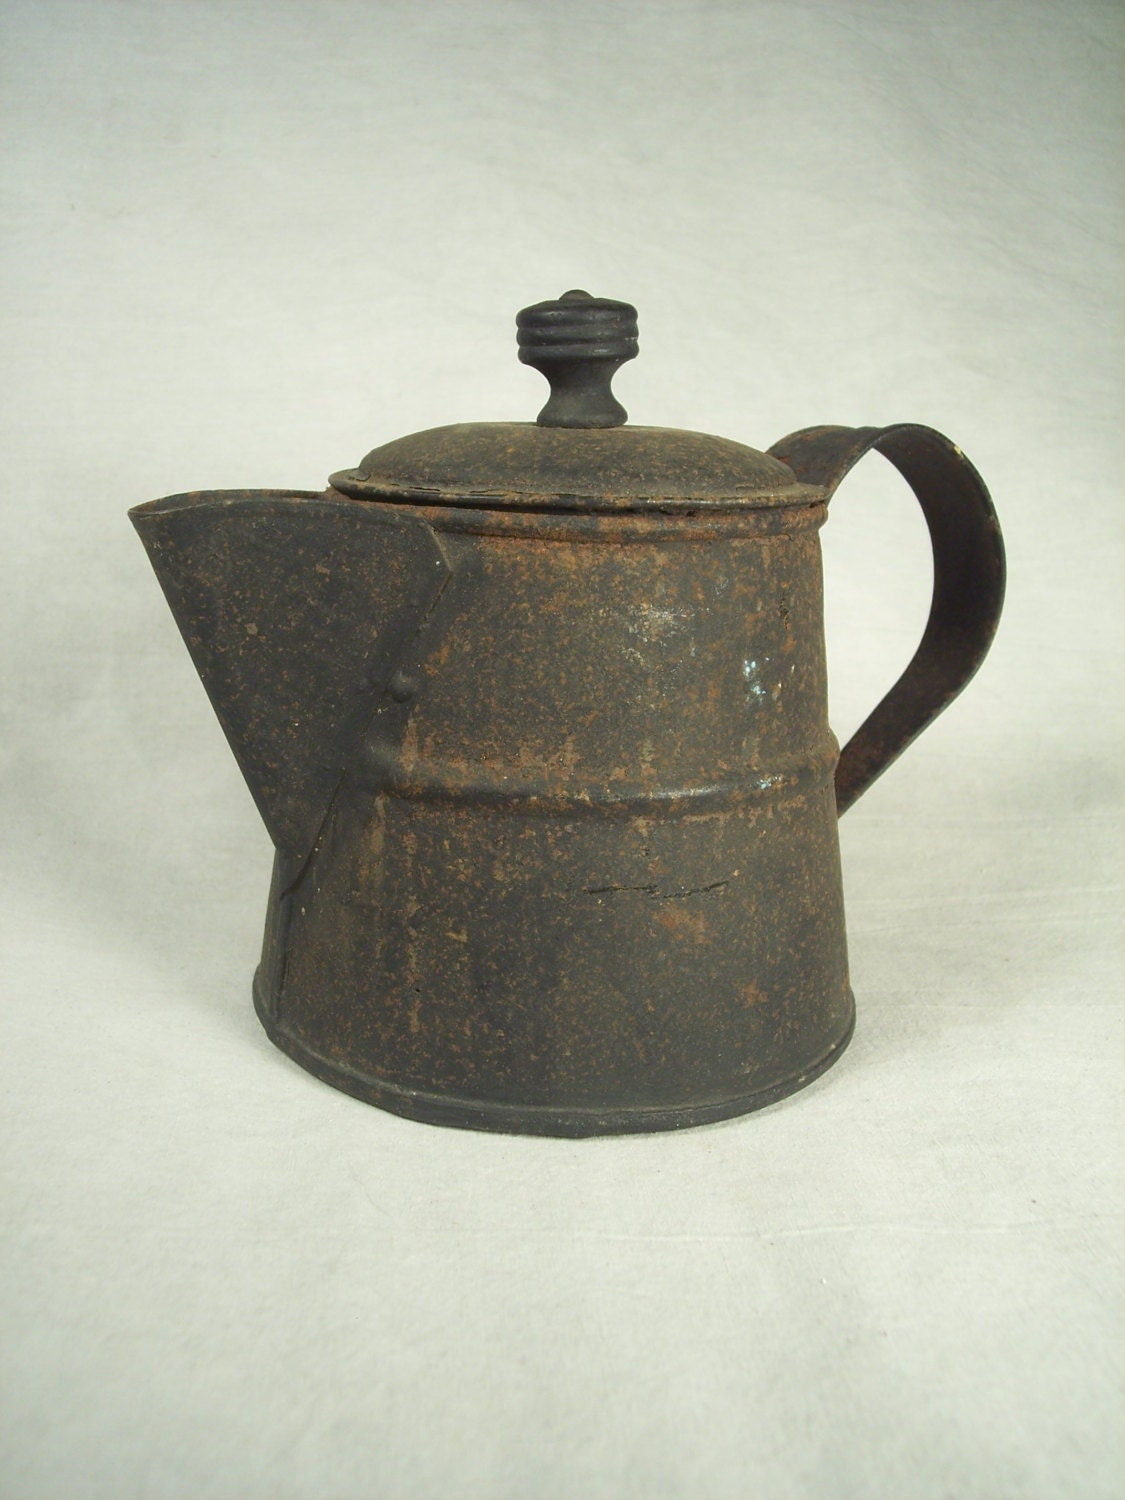 Antique Campfire Coffee Pot Kettle Cowboy Camping